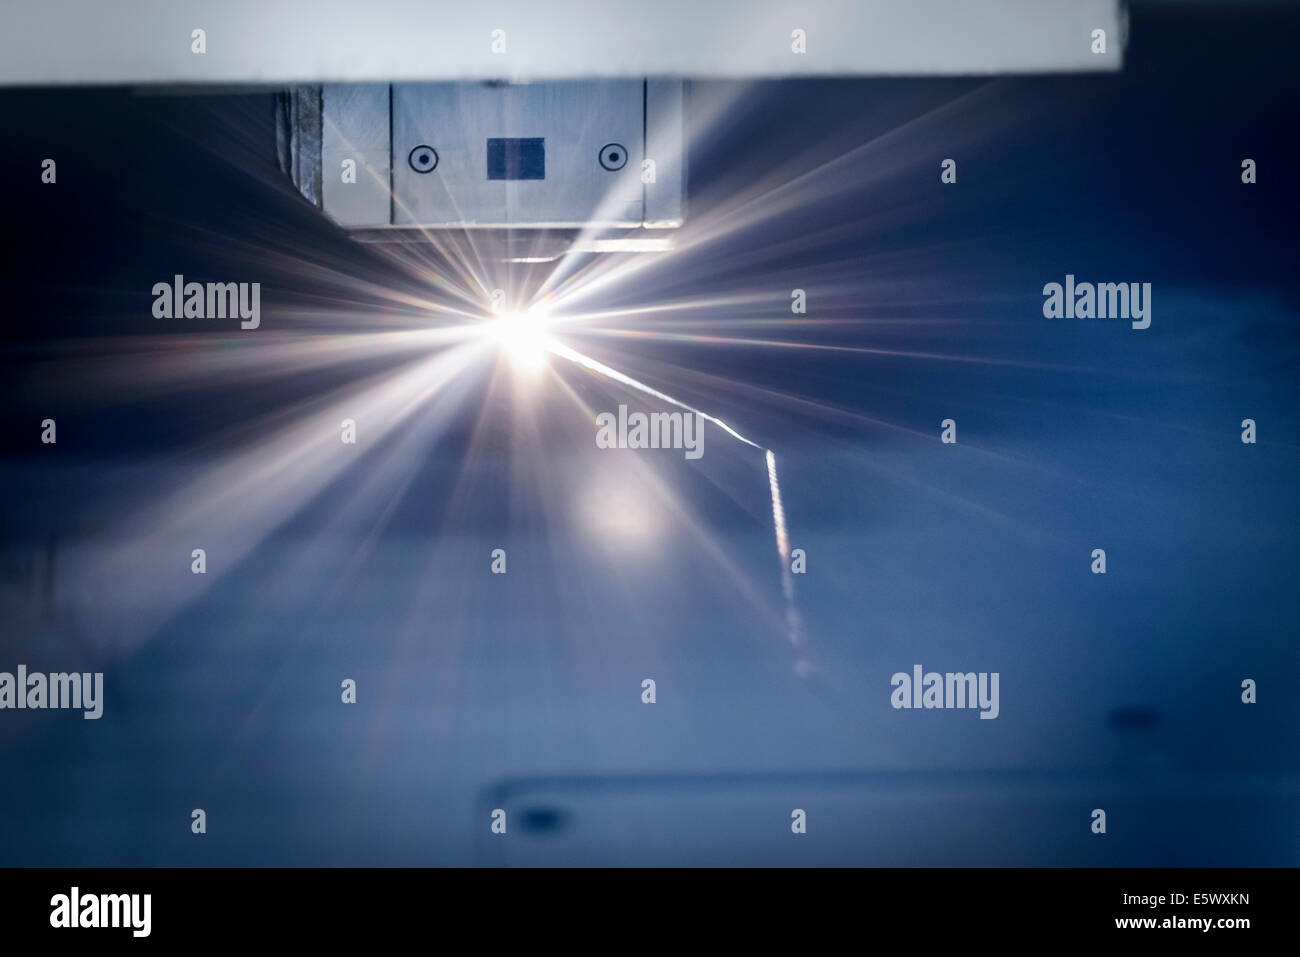 Laser cutter cutting metal in sheet metal factory - Stock Image